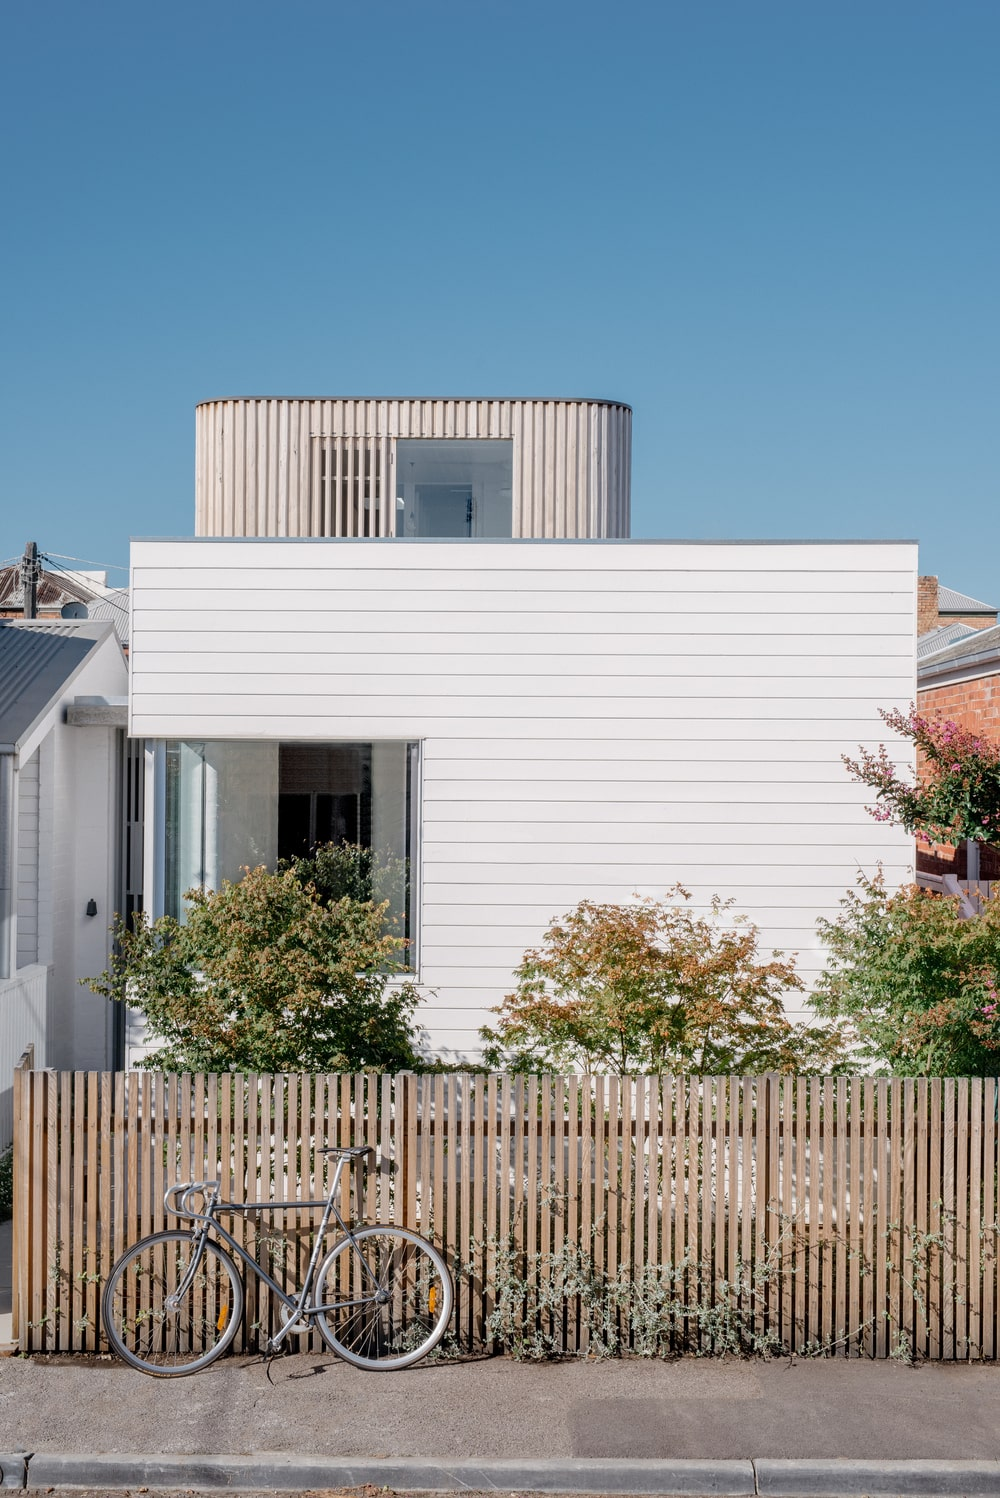 This is a view of the house exterior with bright white exterior walls and a wooden fence surrounding the landscaping.